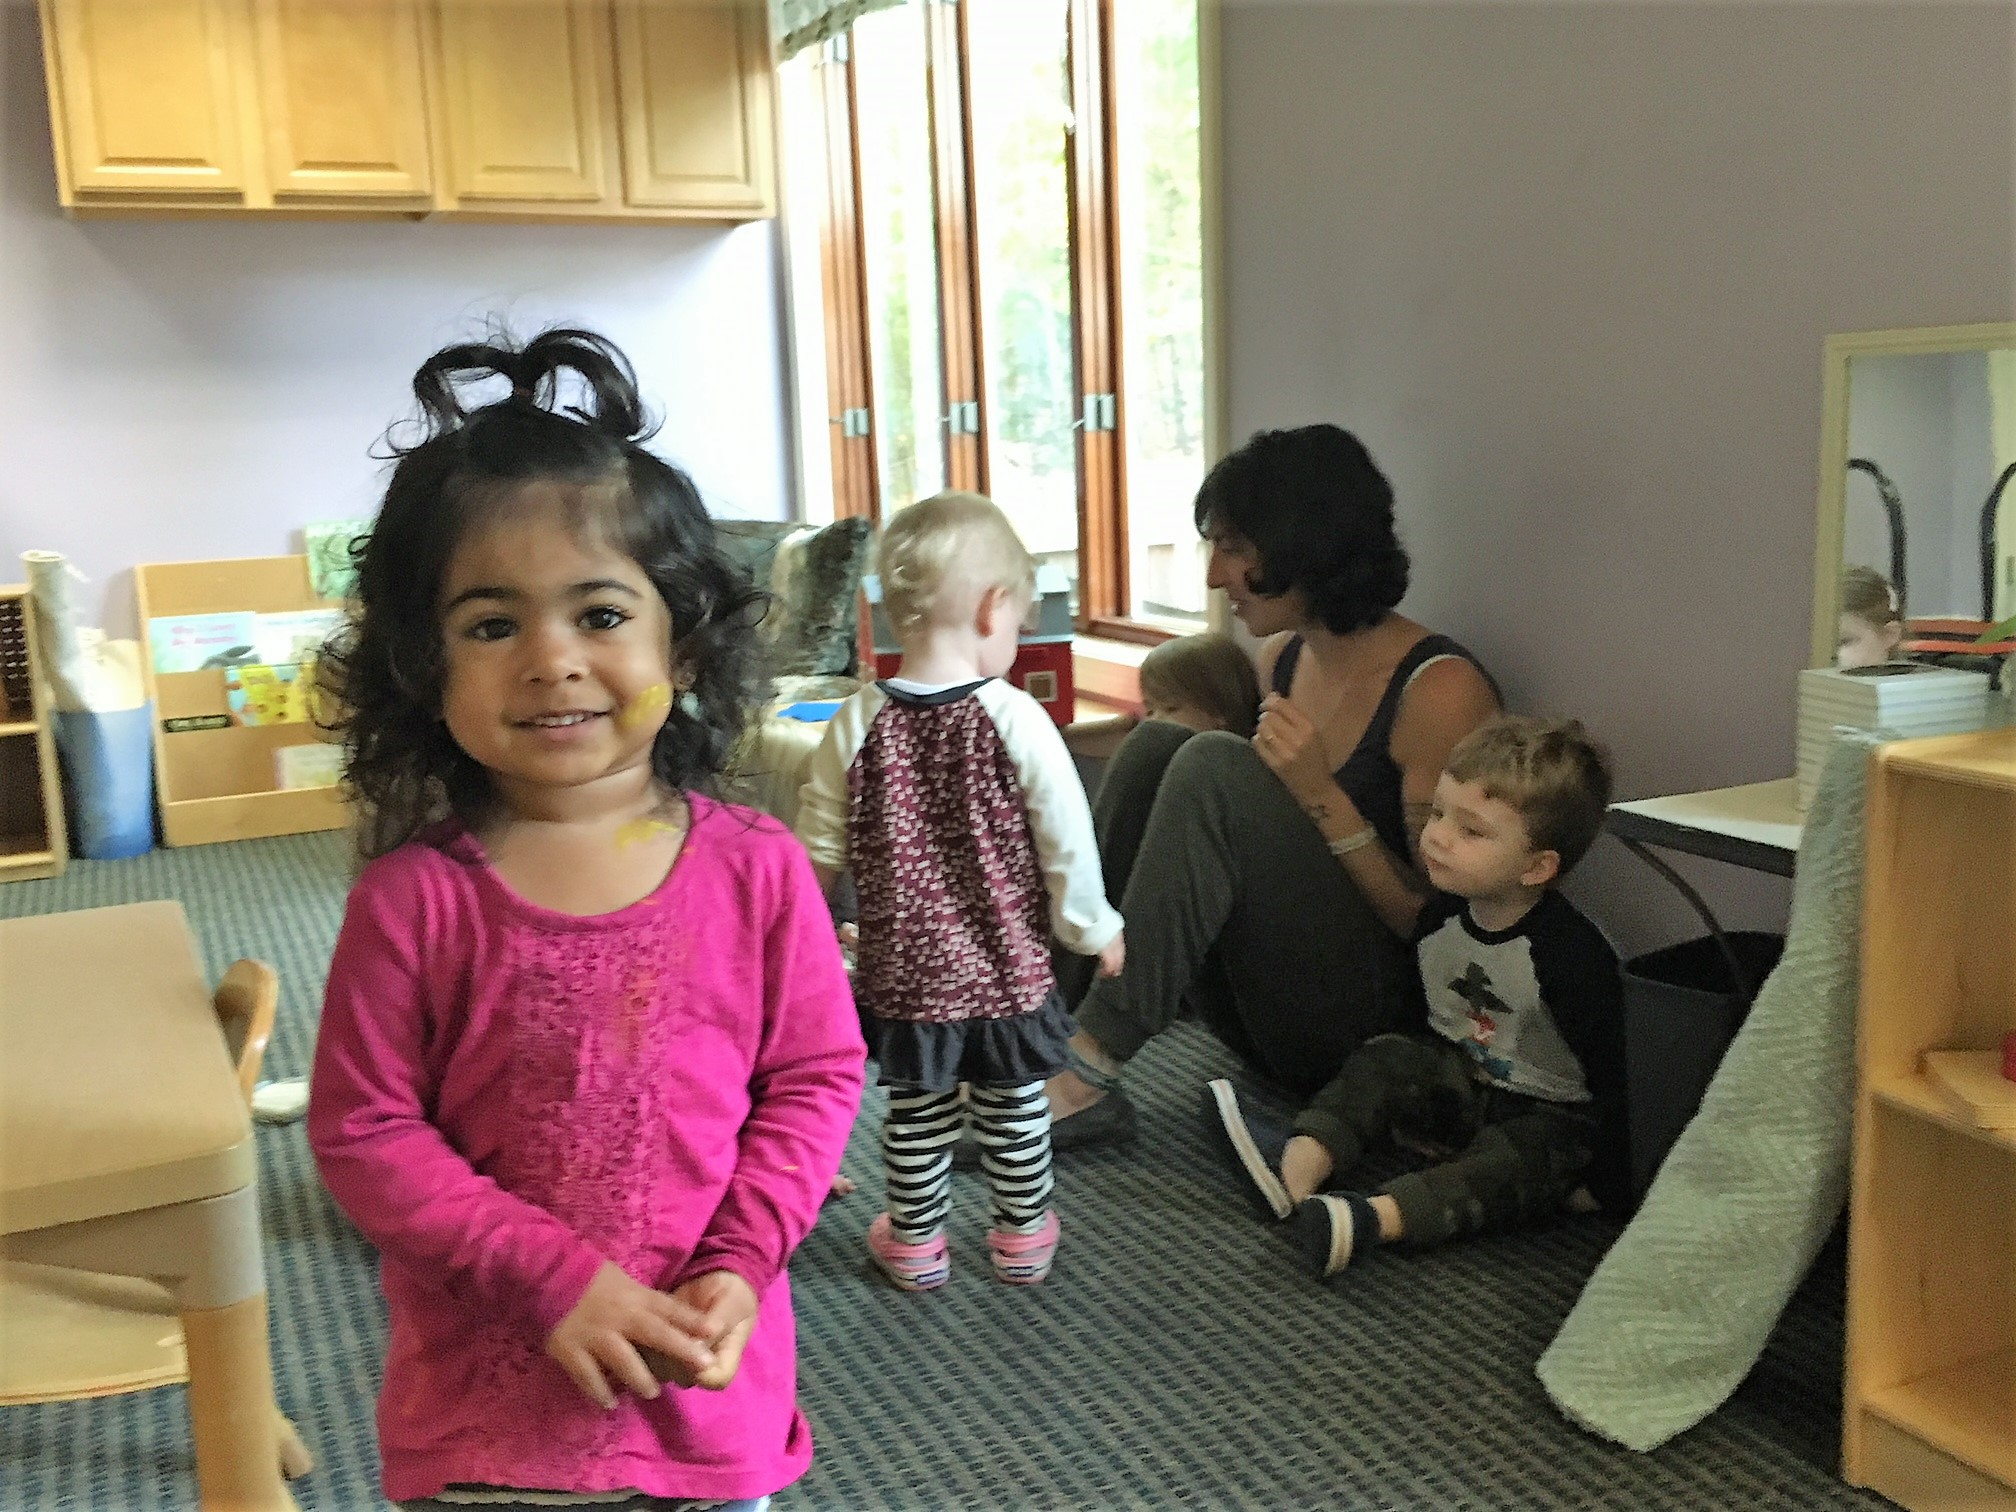 Smiles in the toddler classroom.